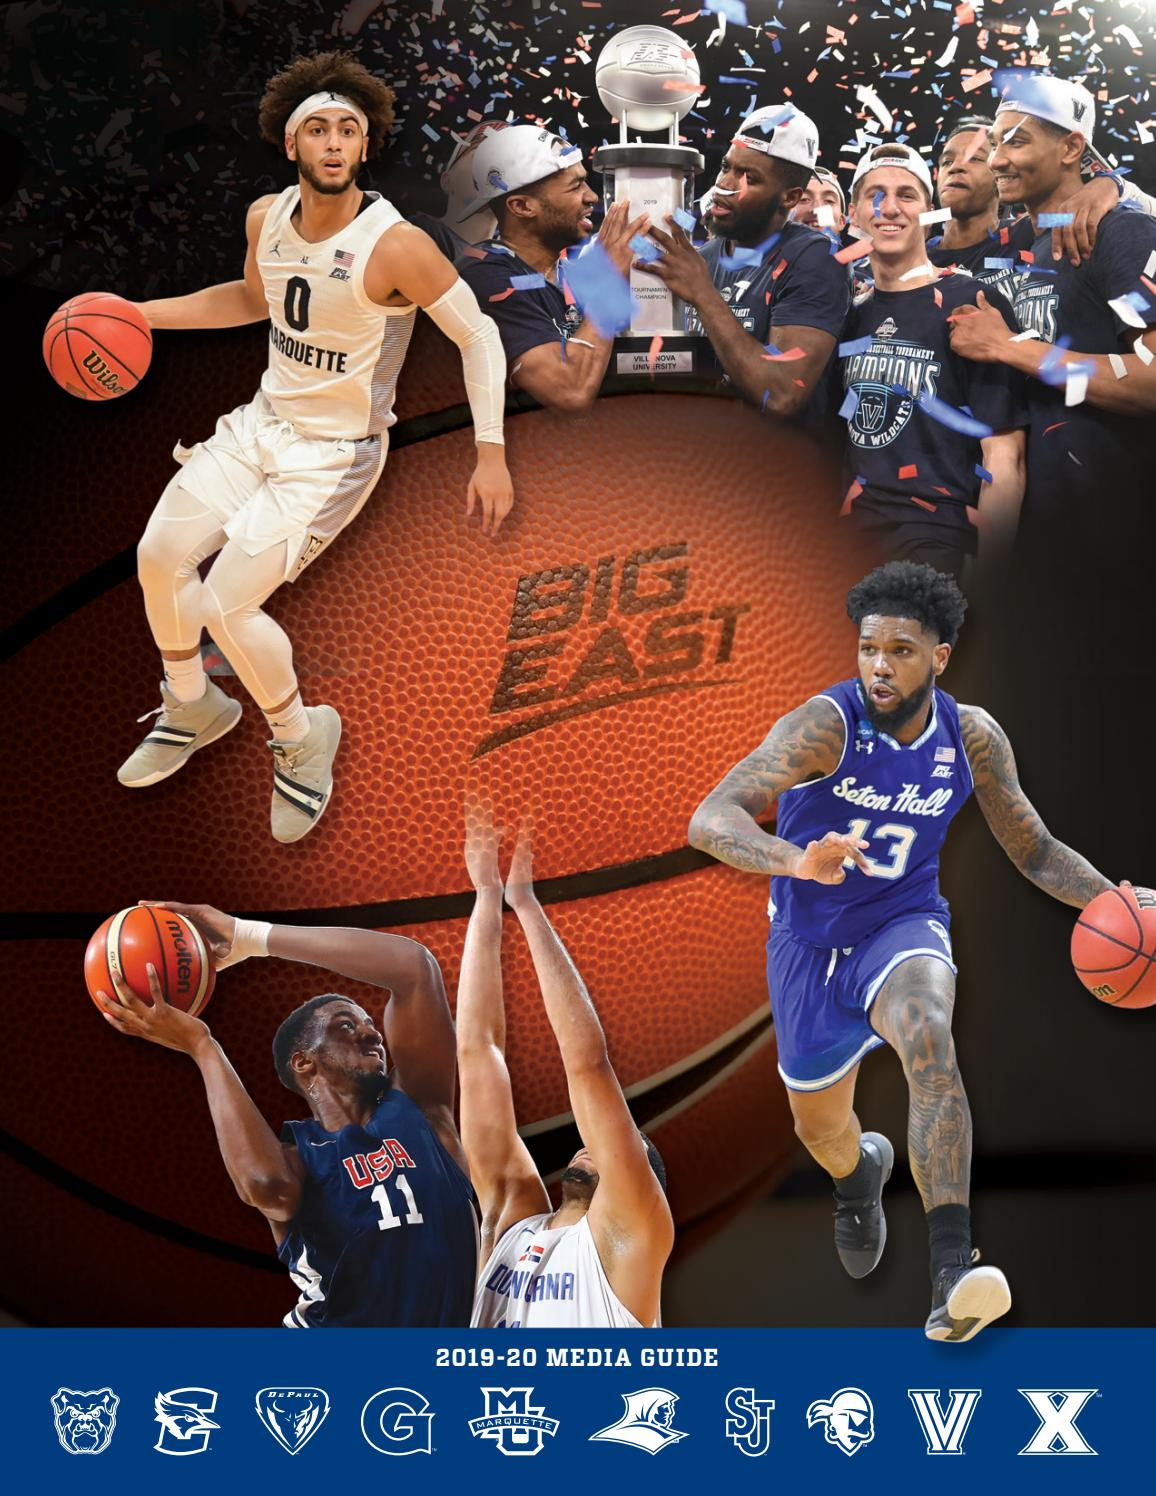 2019 20 Men S Basketball Media Guide By Big East Conference Issuu